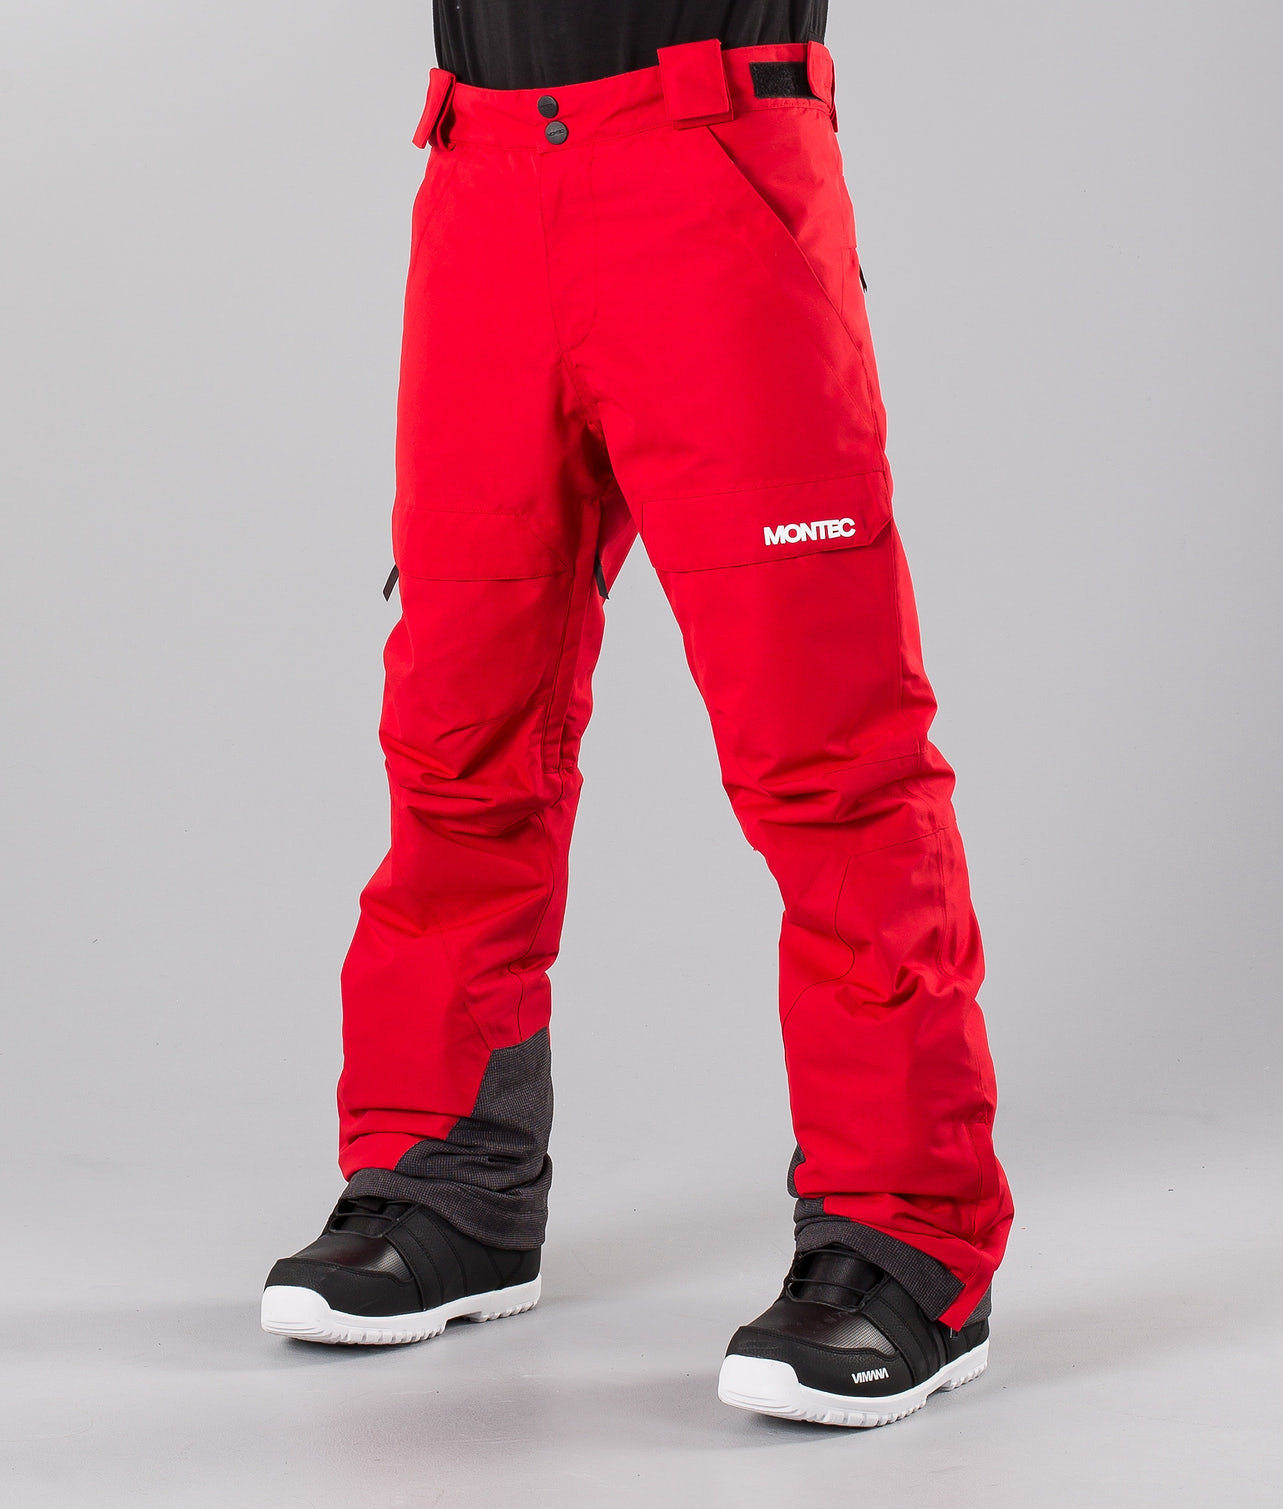 Buy Dune Snowmobile Pant from Montec at Ridestore.com - Always free shipping, free returns and 30 days money back guarantee